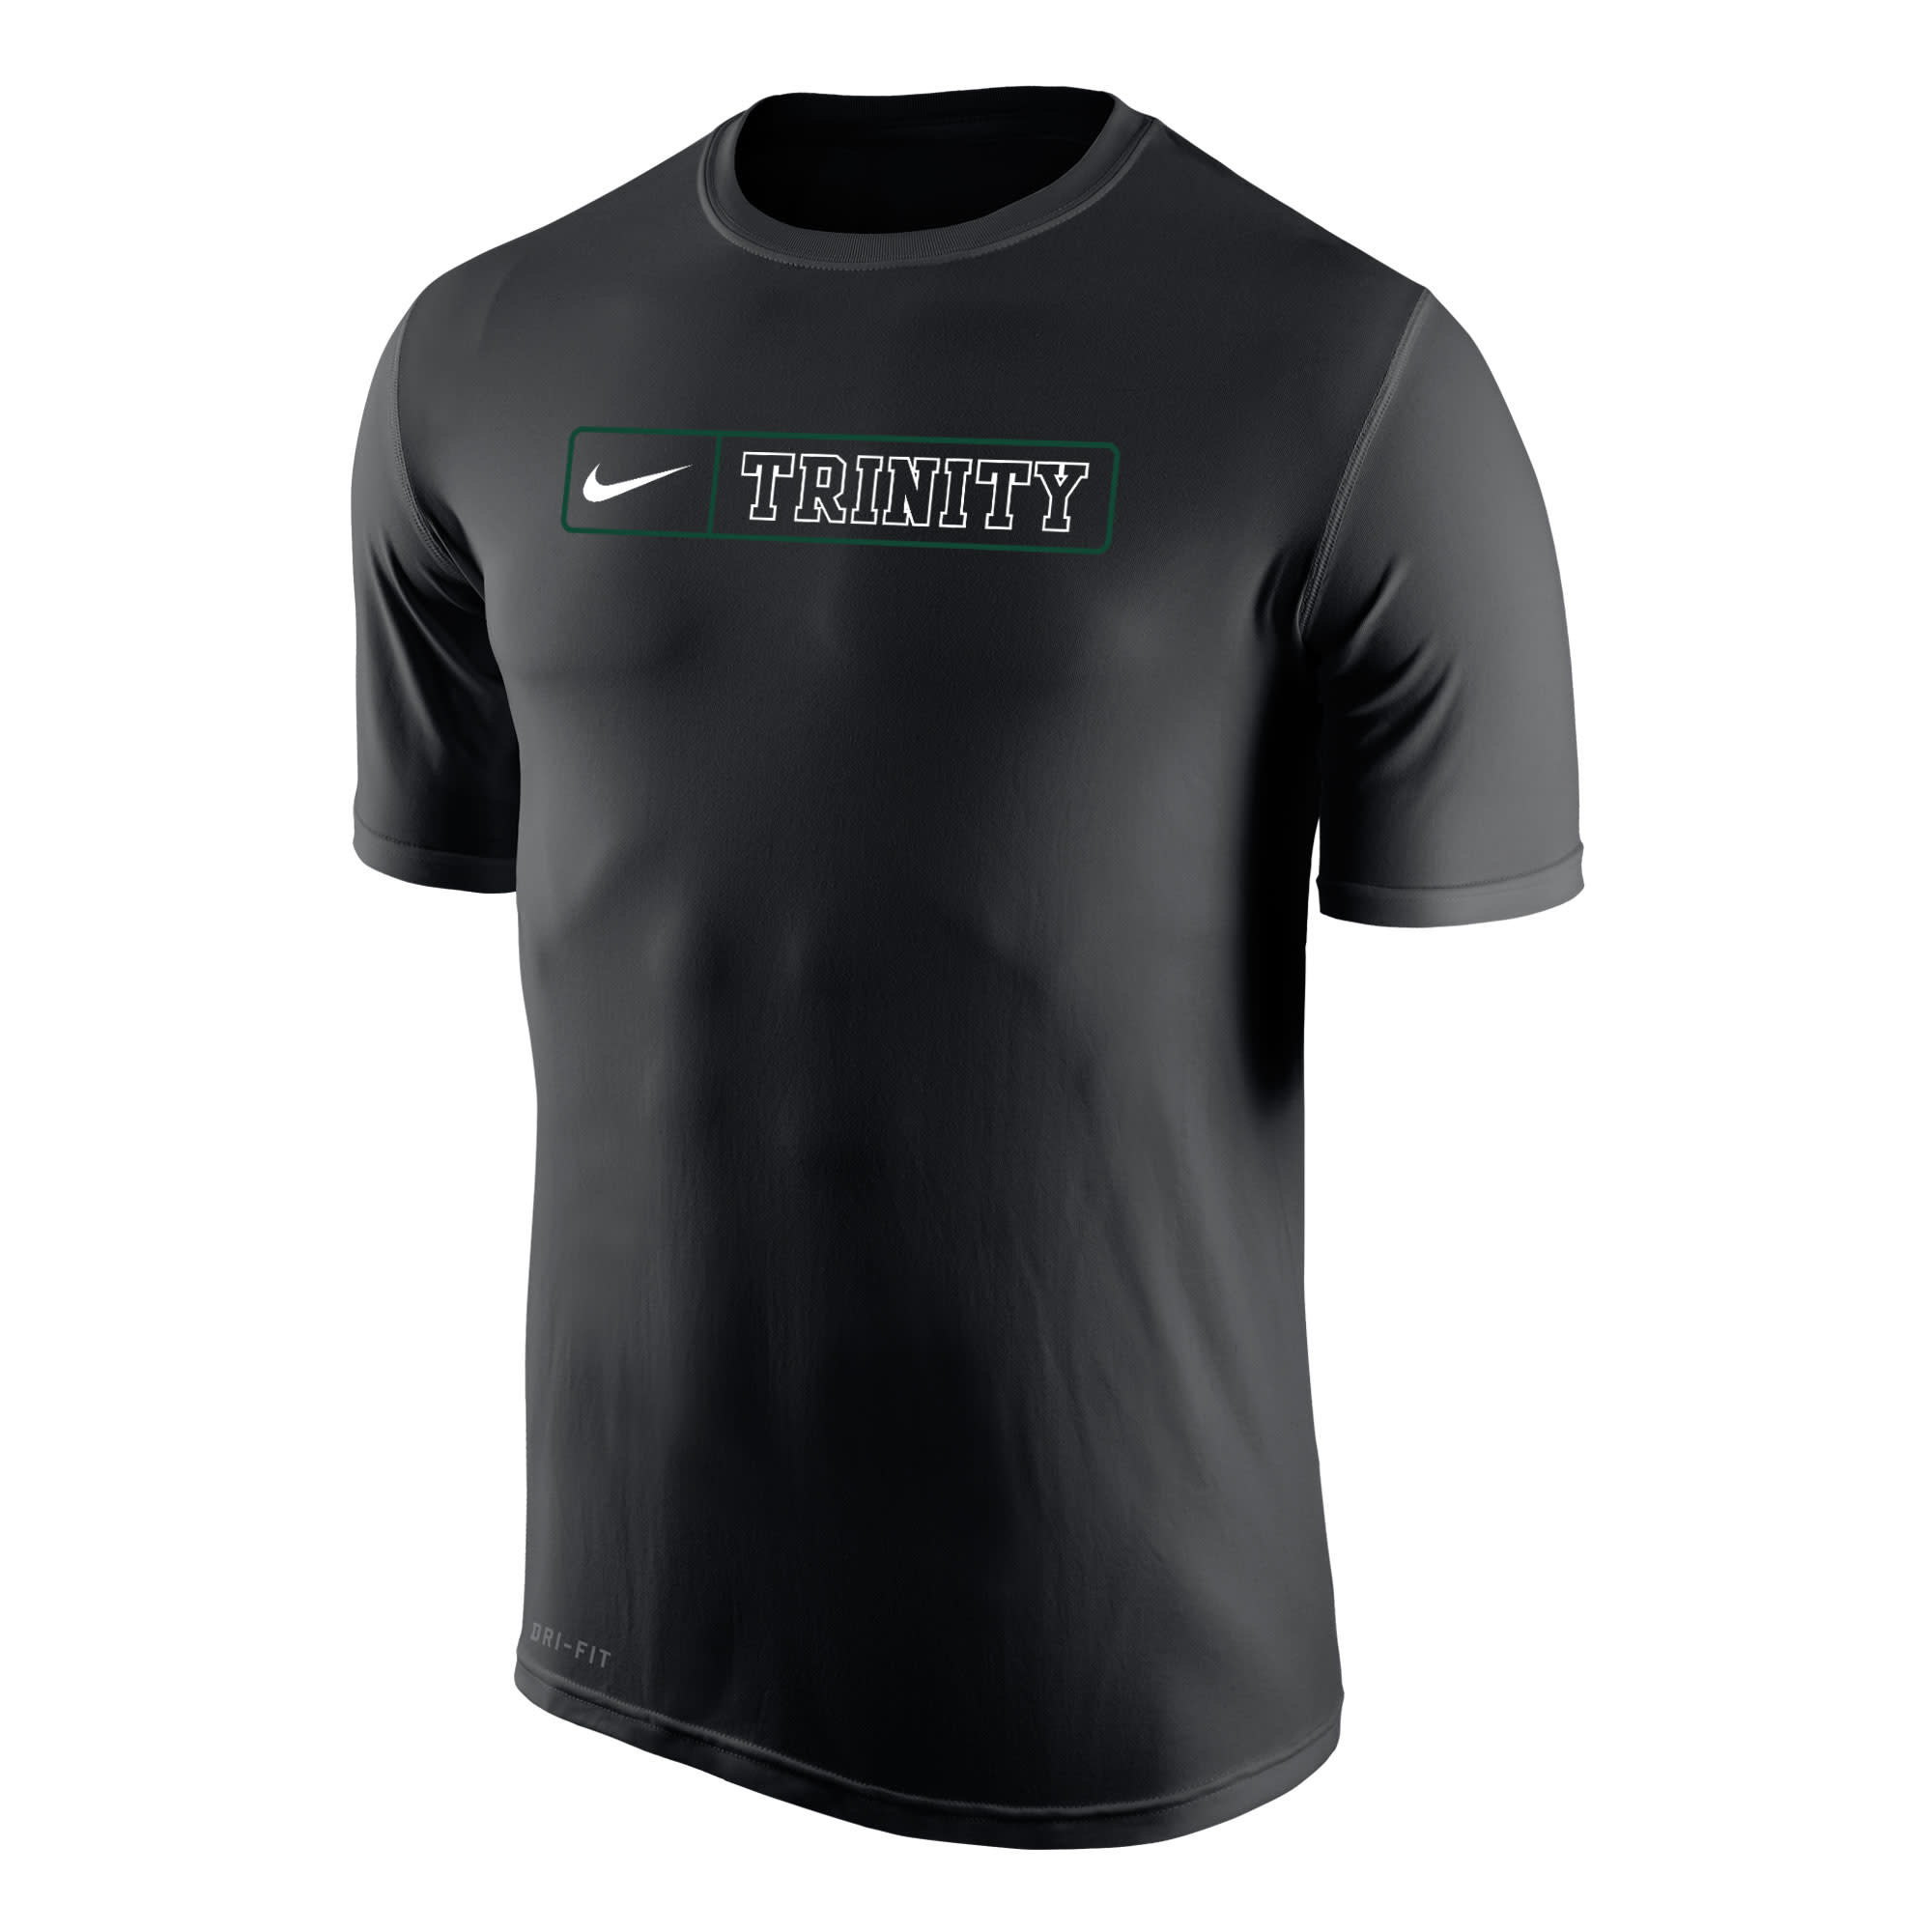 Nike Nike New Legend Black Dri Fit Tee New 2020